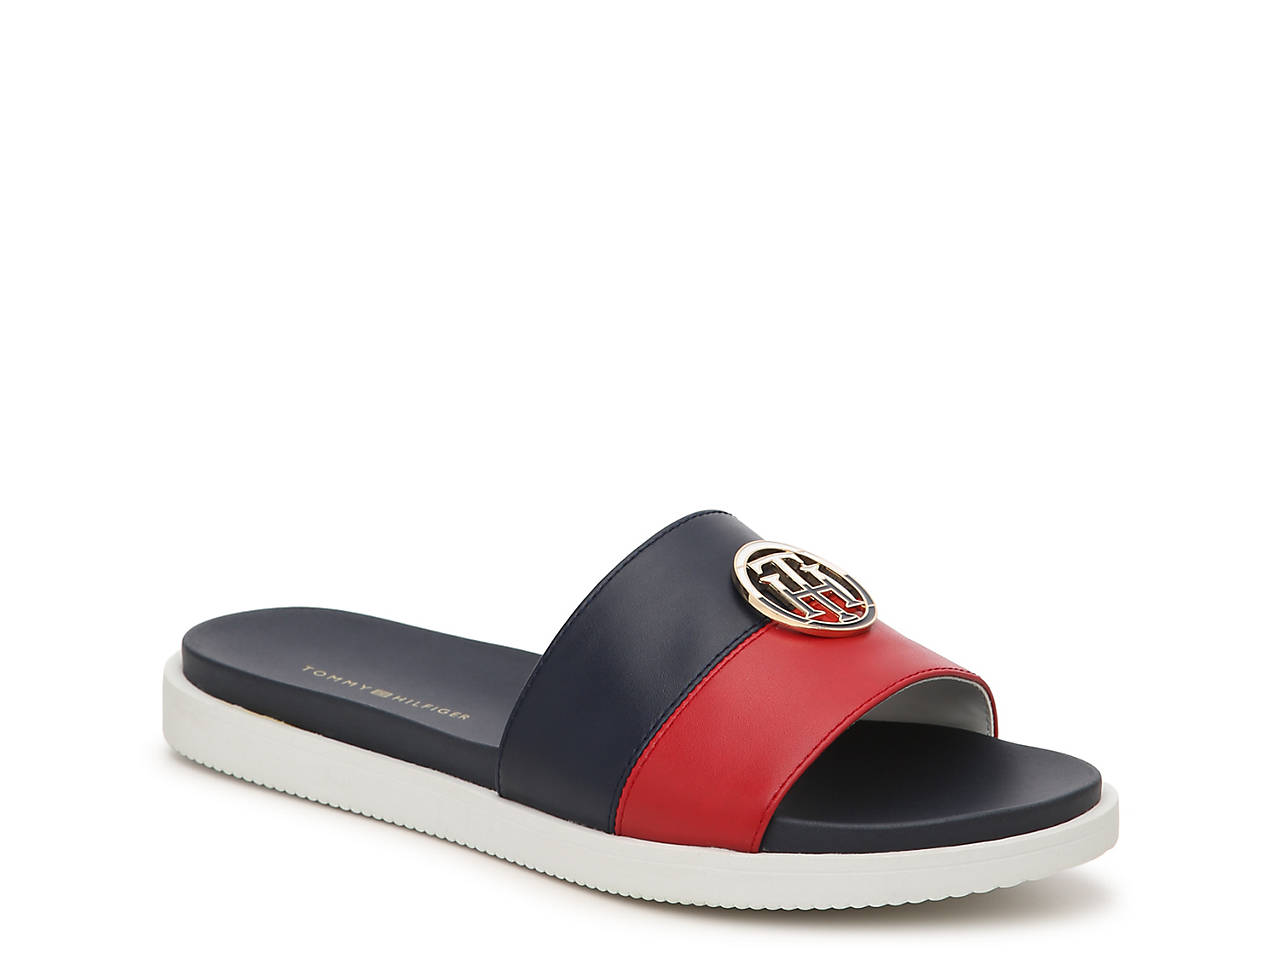 a0cb08ac5948 Tommy Hilfiger Souli Slide Sandal Women s Shoes